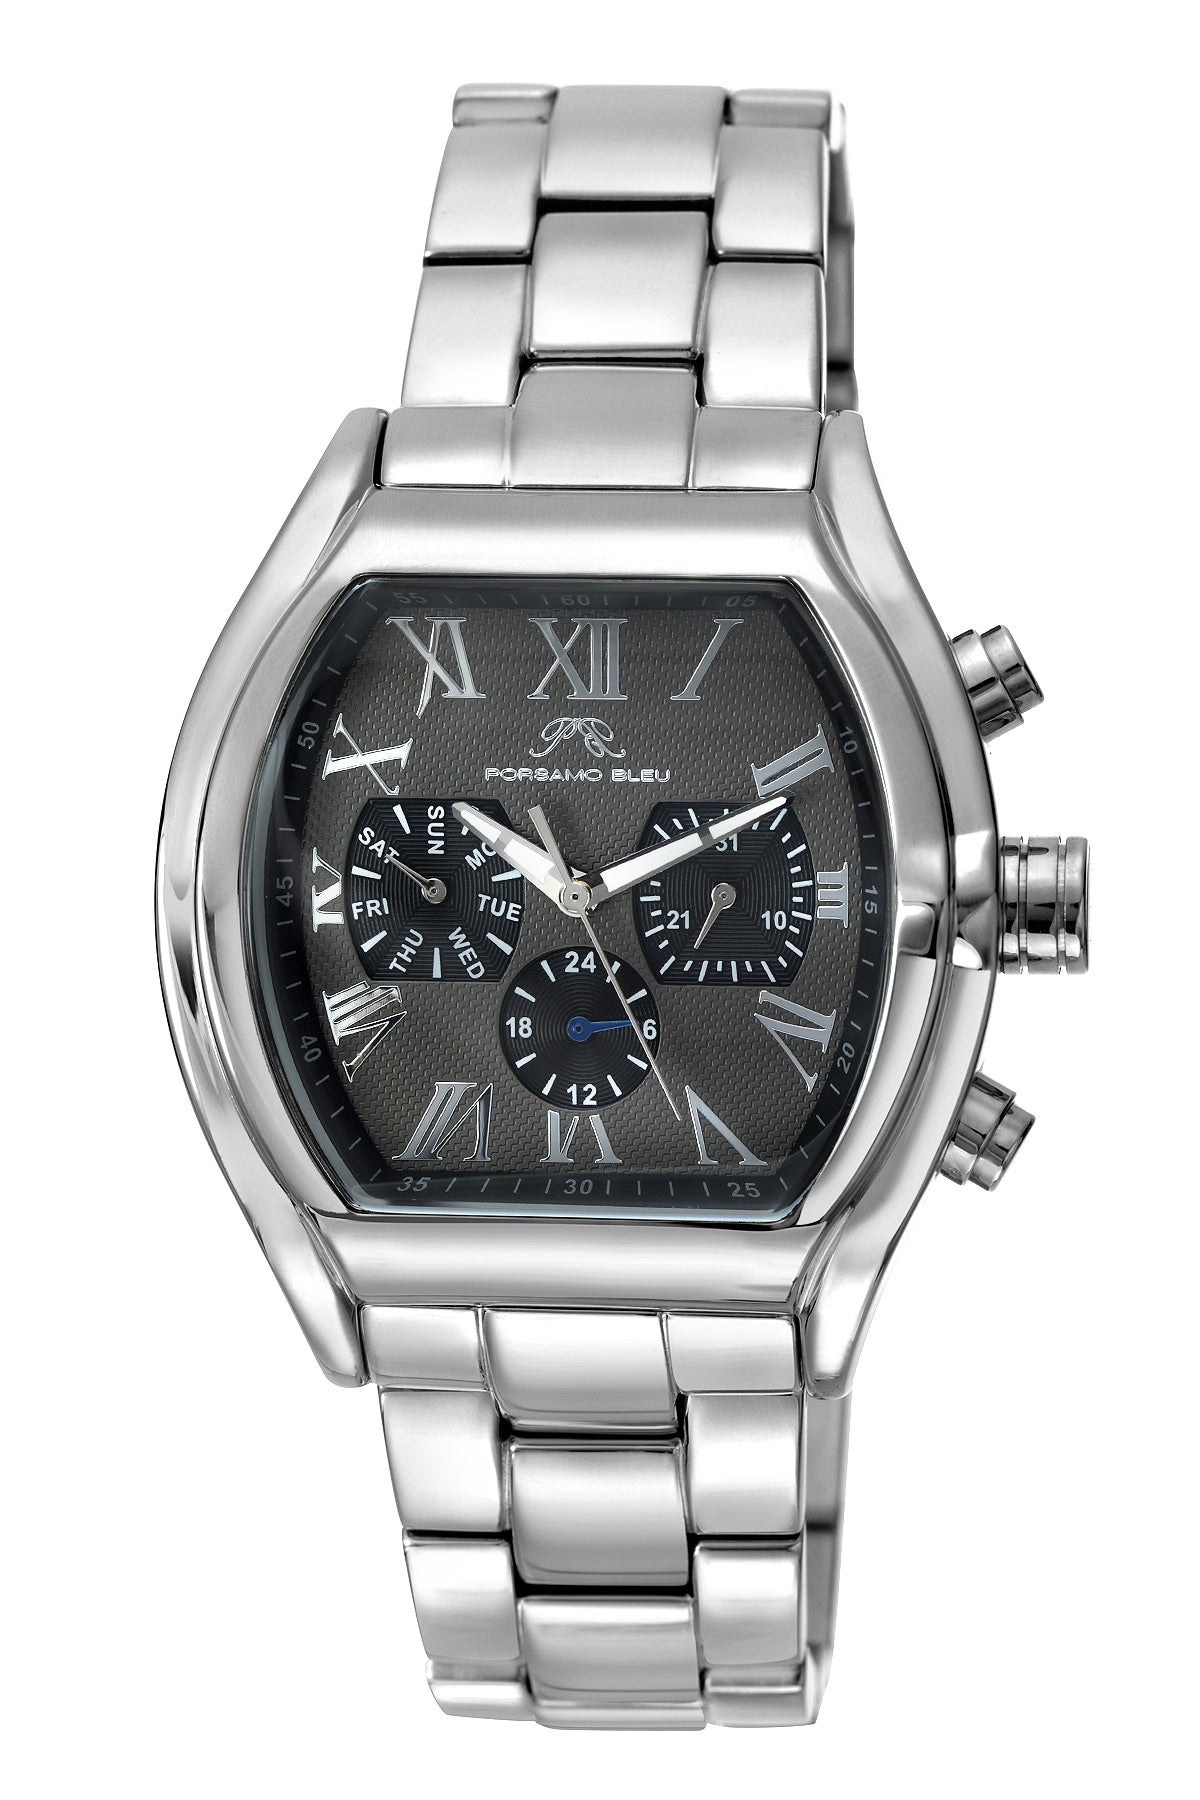 Bruno men's luxury watch 201CBRS